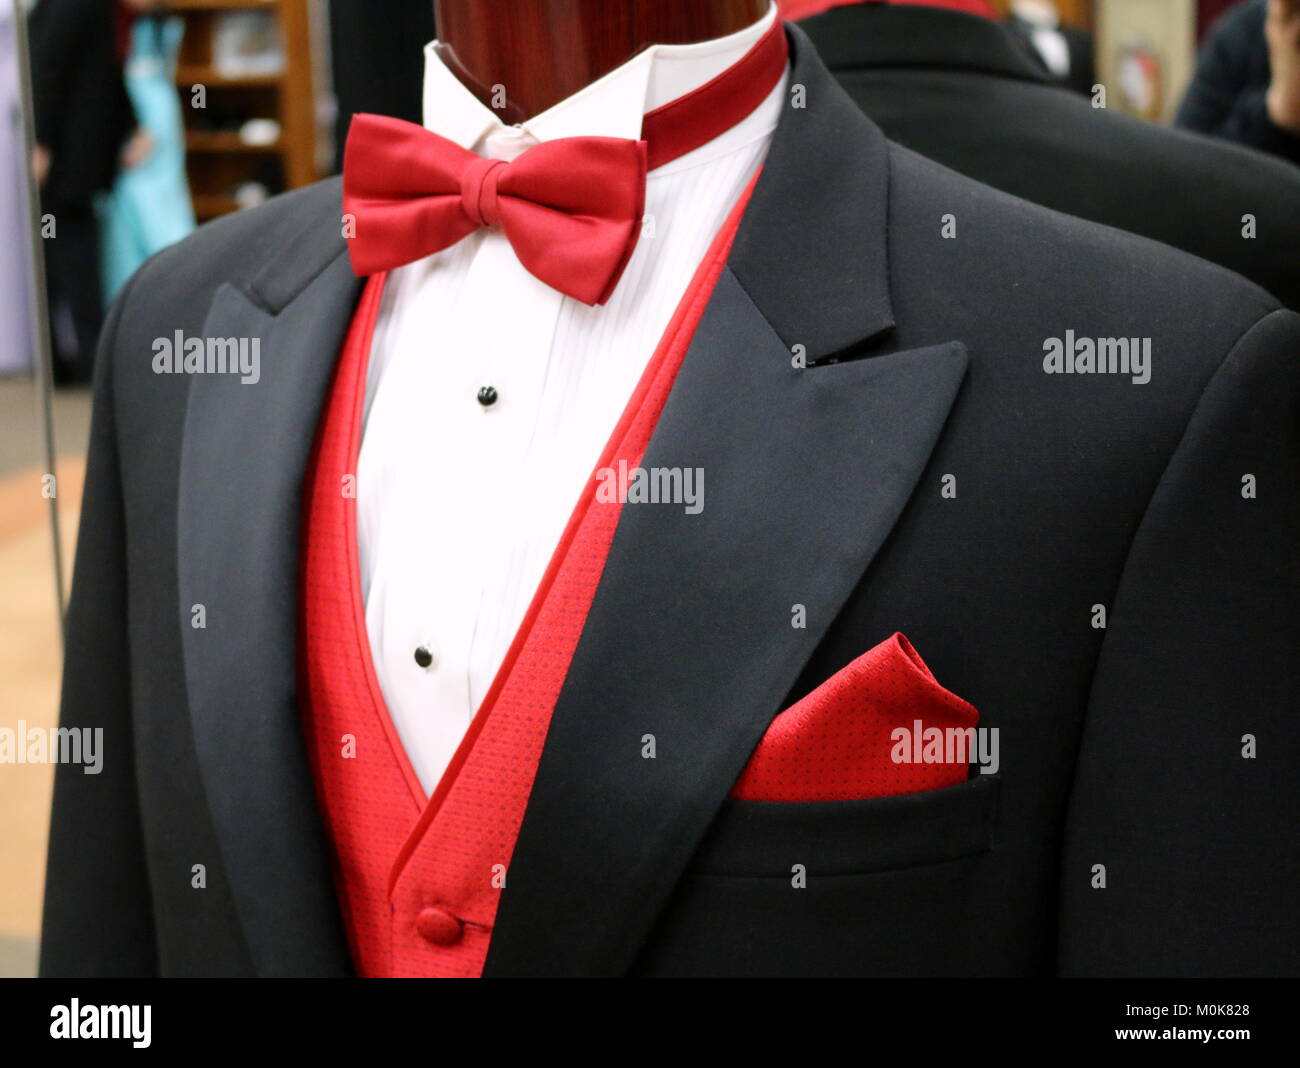 Black Tuxedo With Red Bow Tie - Stock Image